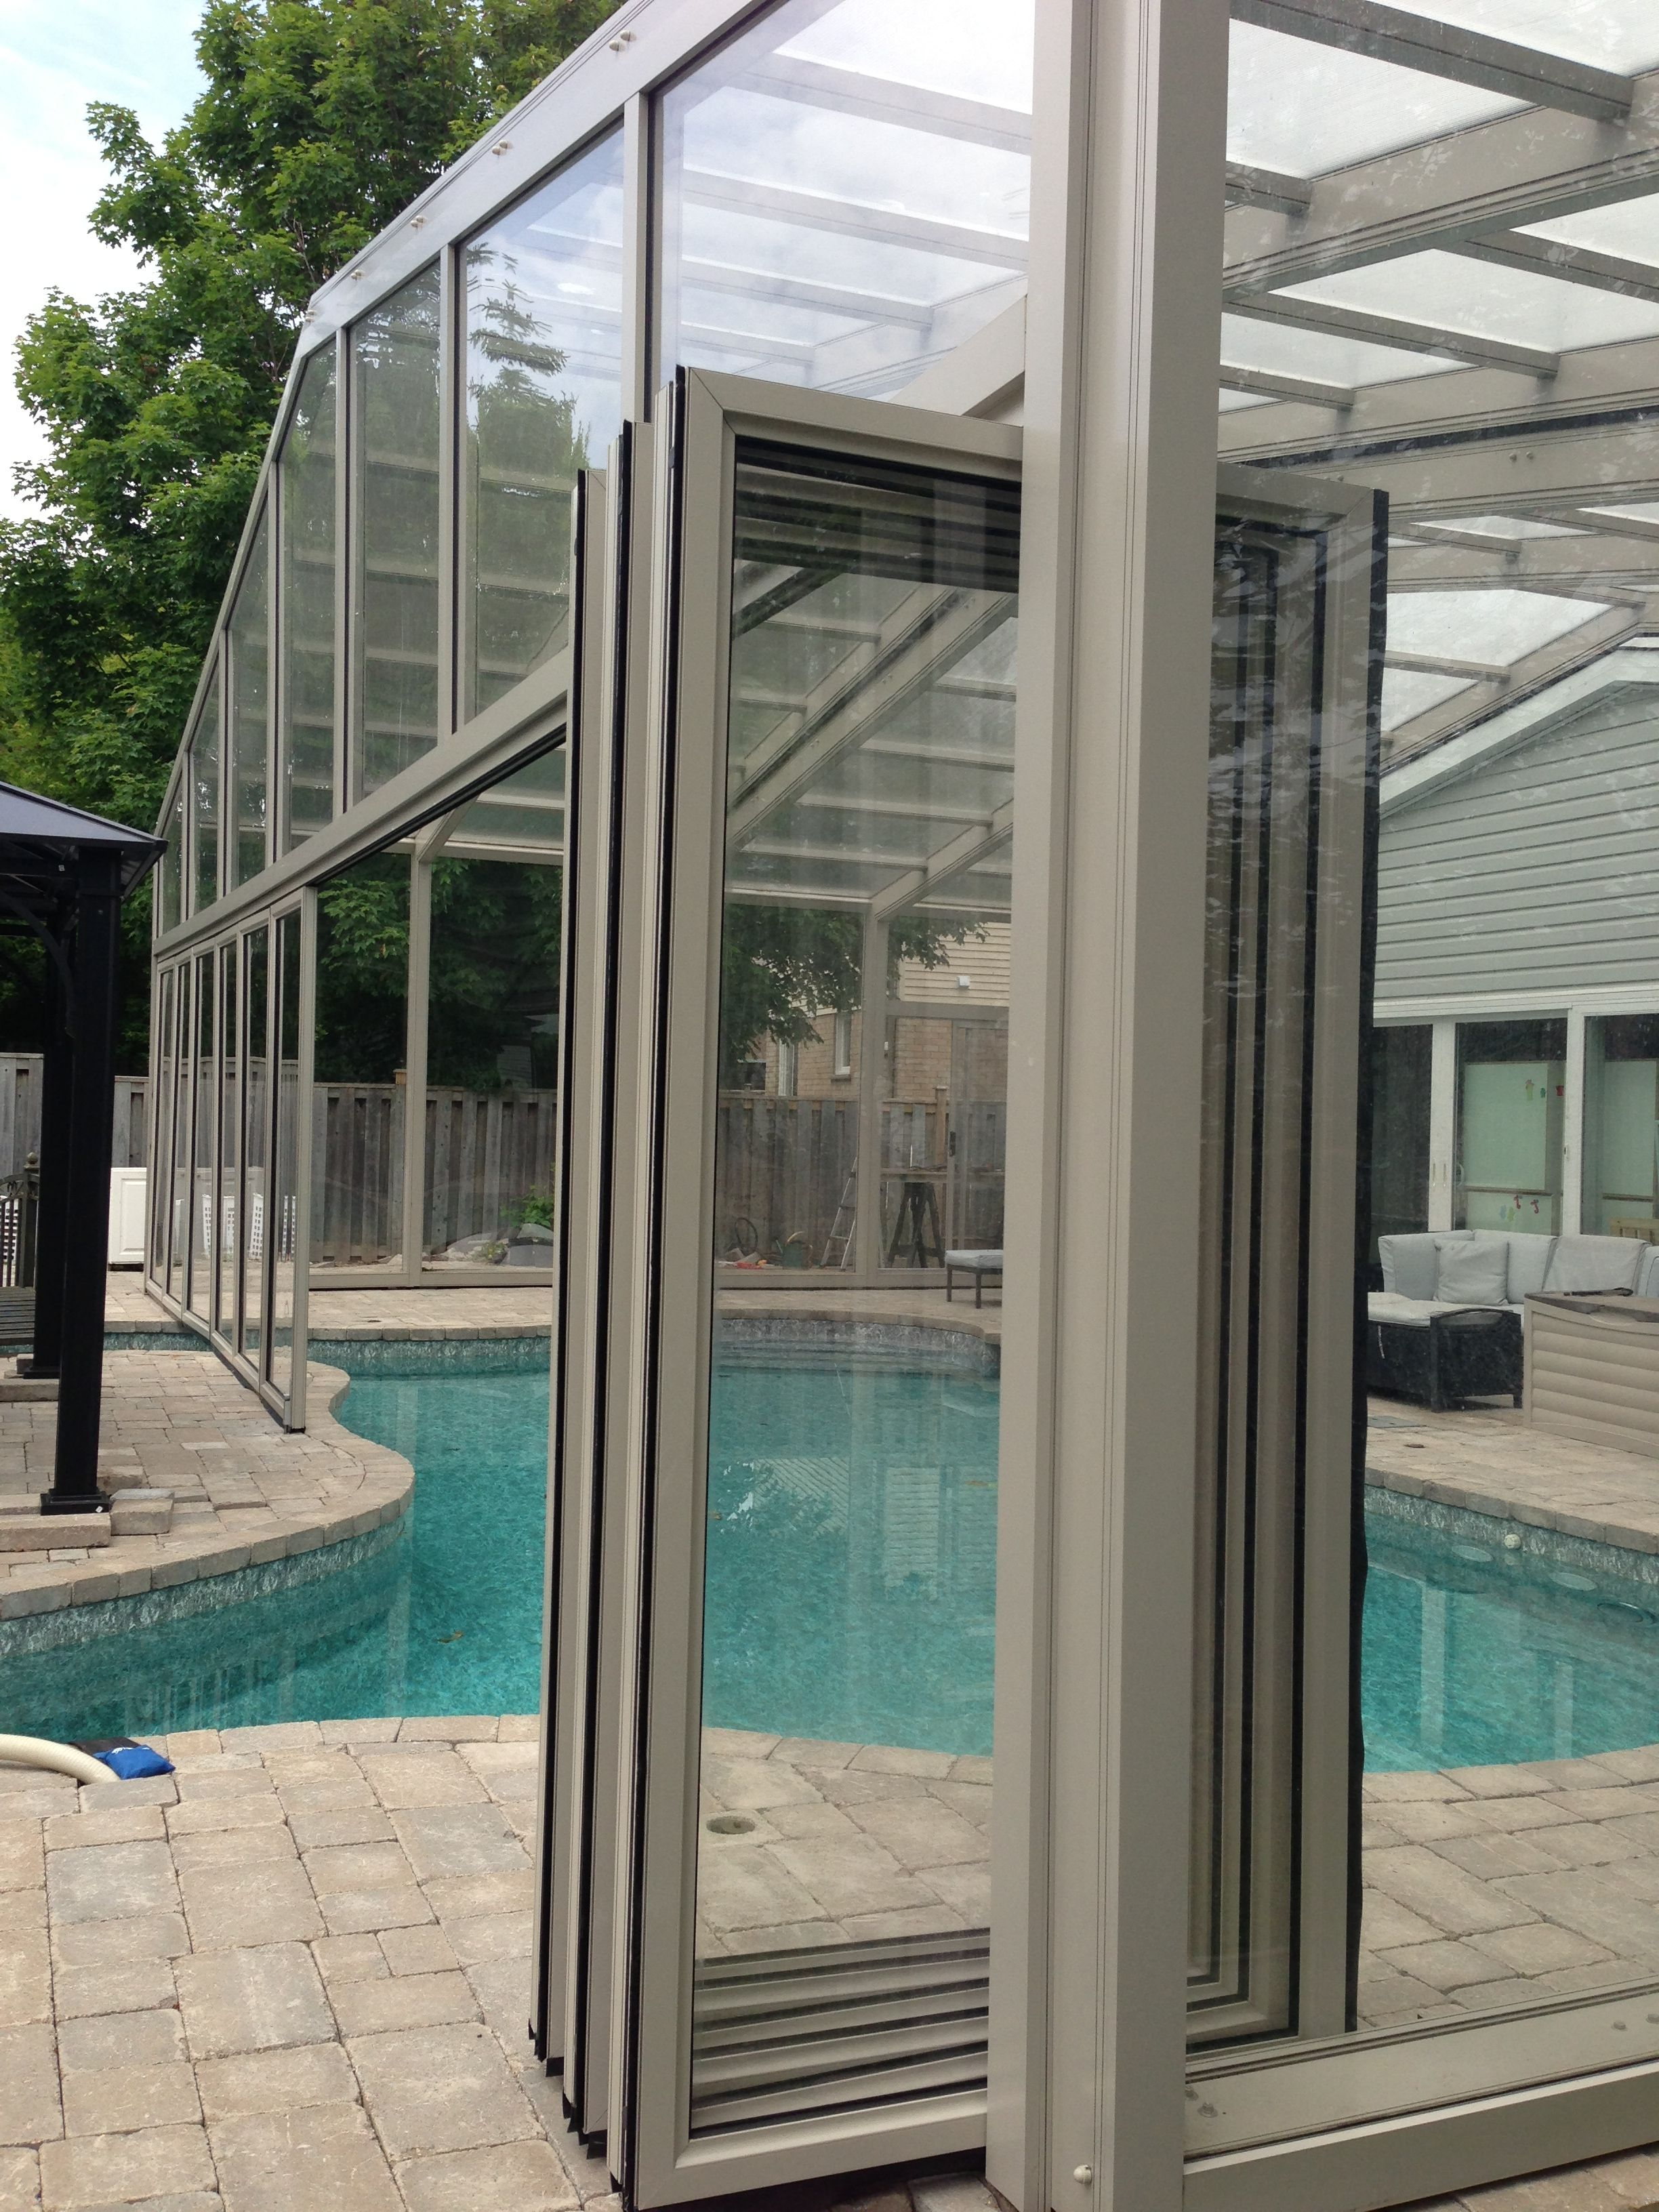 Bi Fold Doors Open On Pool Enclosure Indoor Outdoor Pool Pool Enclosures Pool Decks